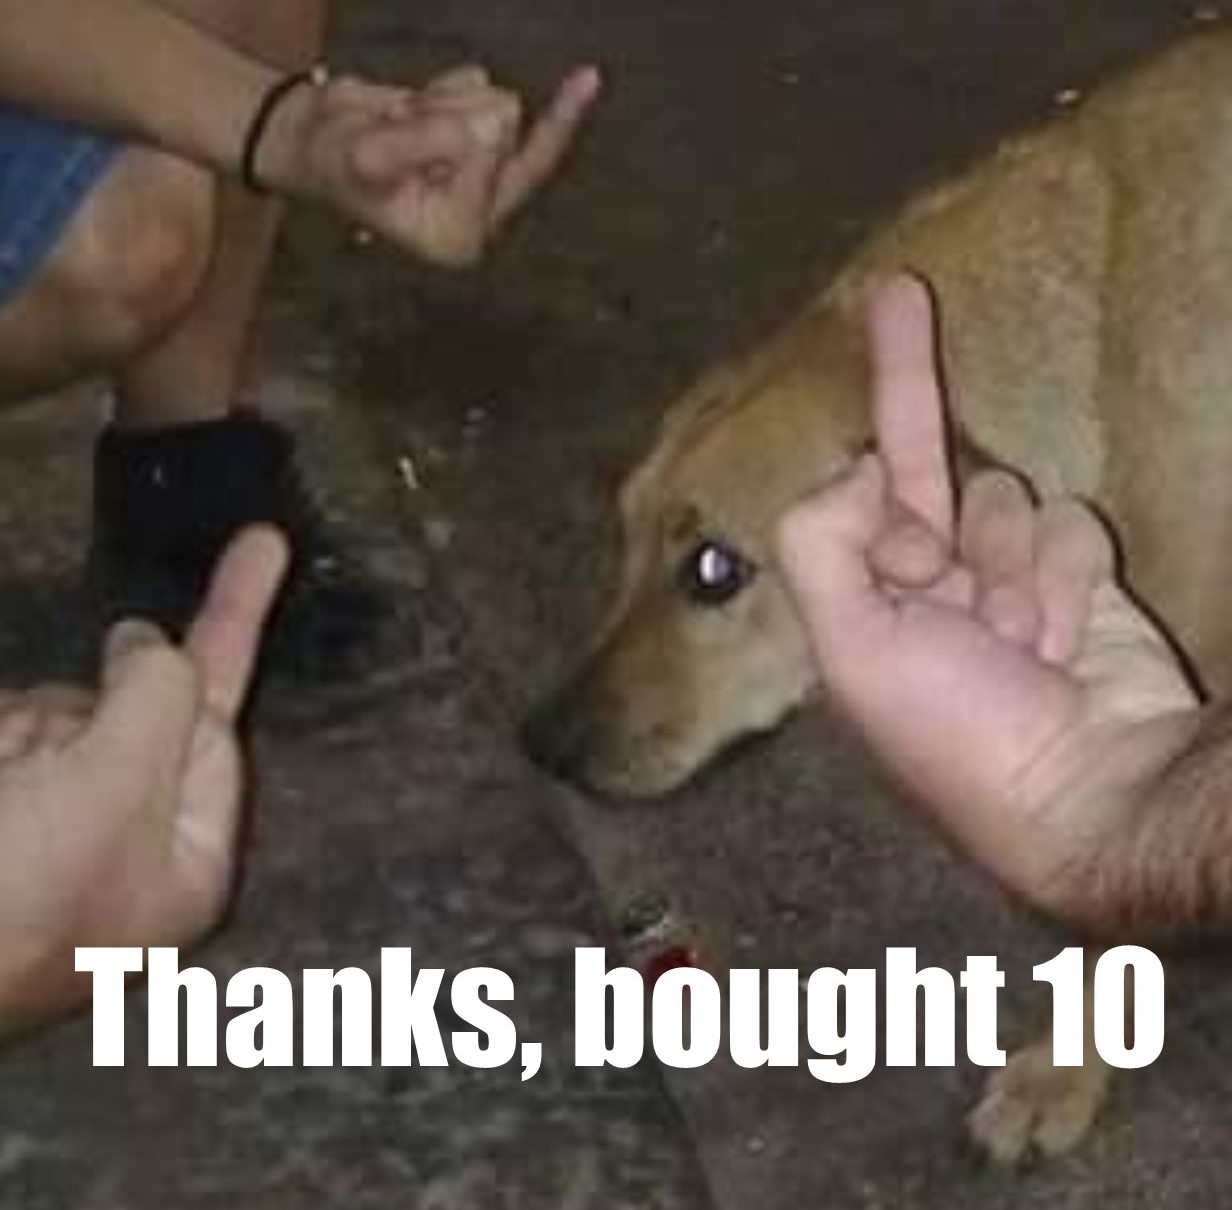 Thanks, bought 10